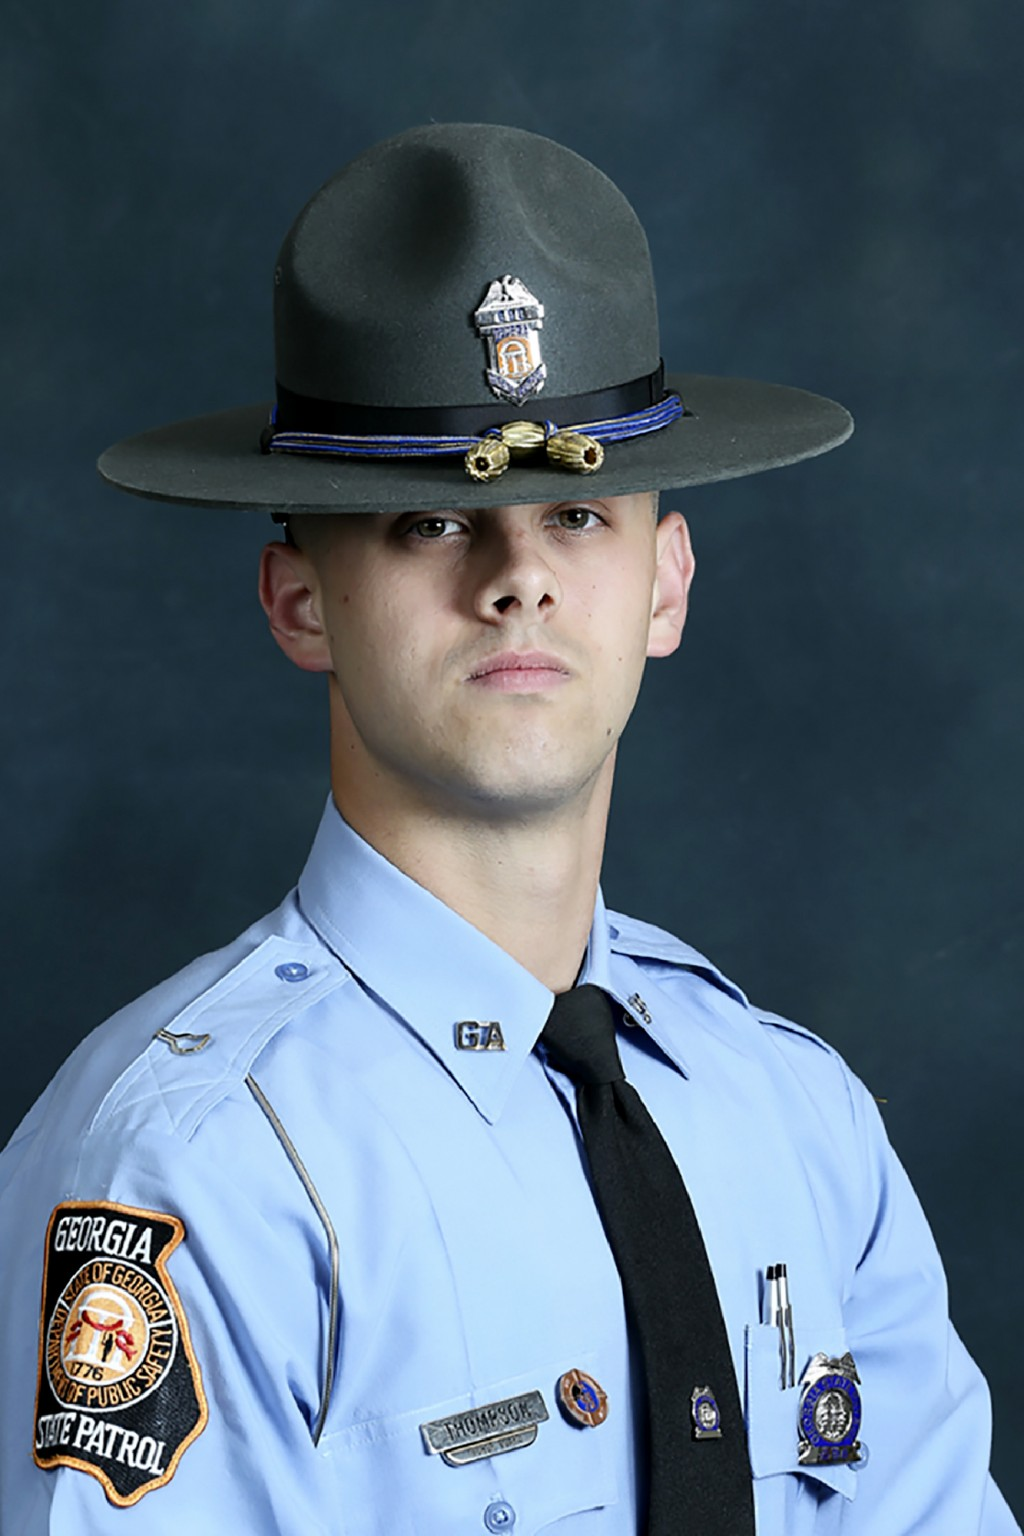 FILE - In this undated photo provided by the Georgia Department of Public Safety, state trooper Jacob Gordon Thompson is seen in an official portrait....